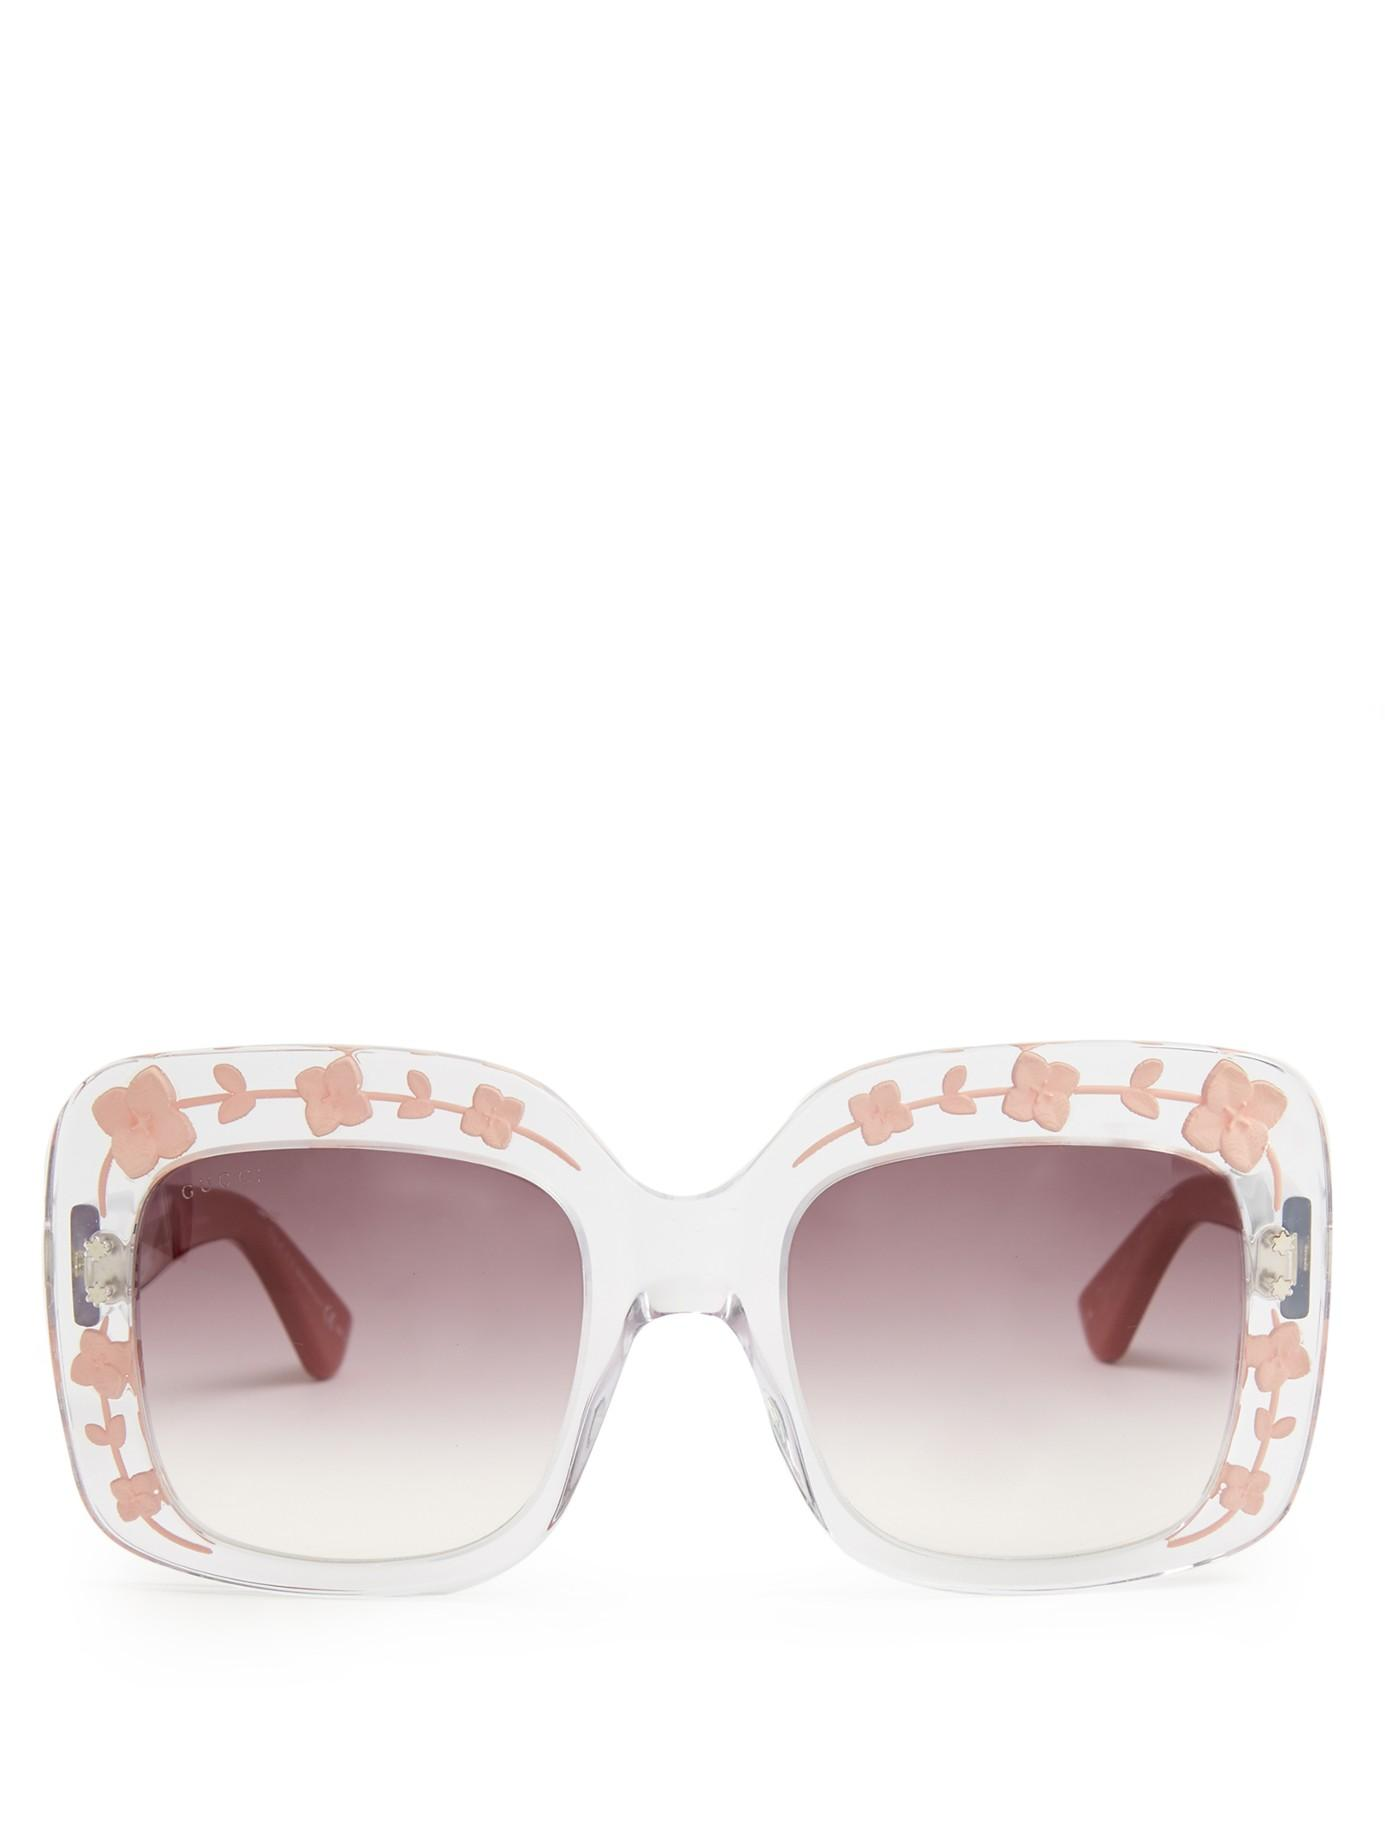 Lyst - Gucci Oversized Square-frame Acetate Sunglasses in Pink